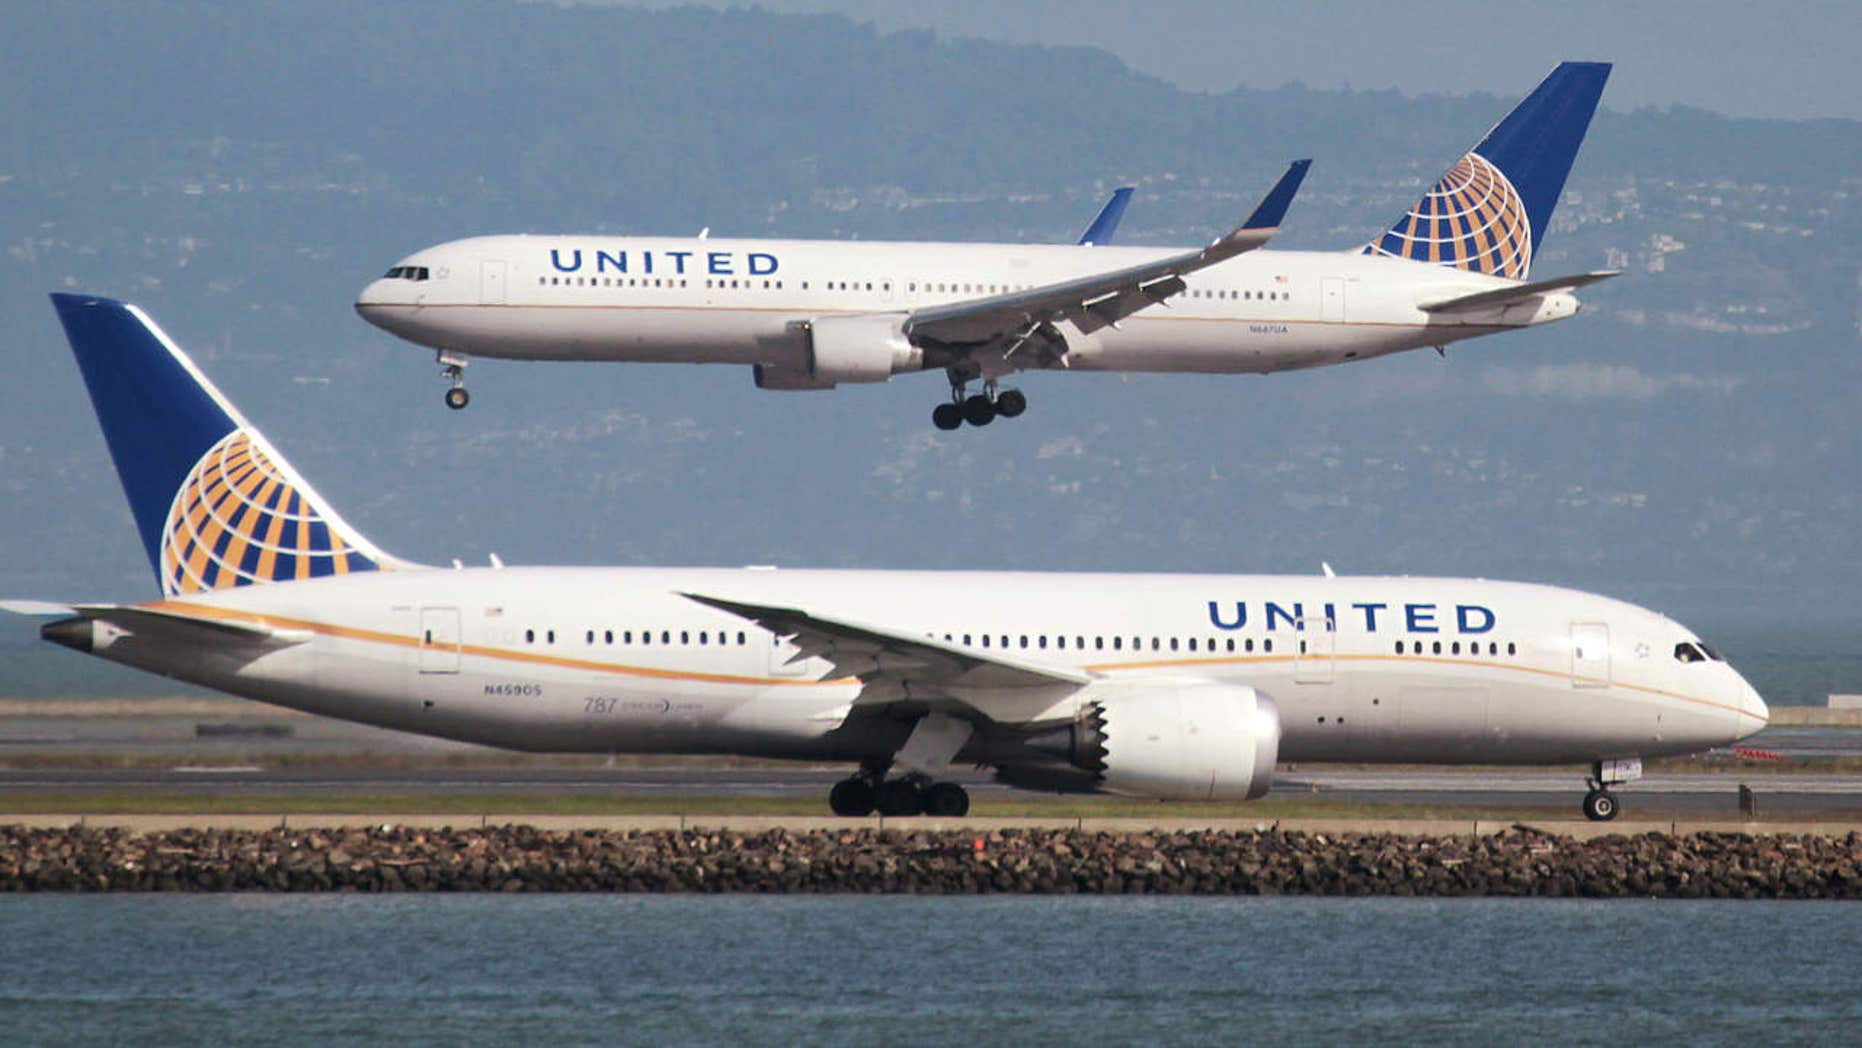 A United Airlines Boeing 787 taxis as a United Airlines Boeing 767 lands at San Francisco International Airport, San Francisco.